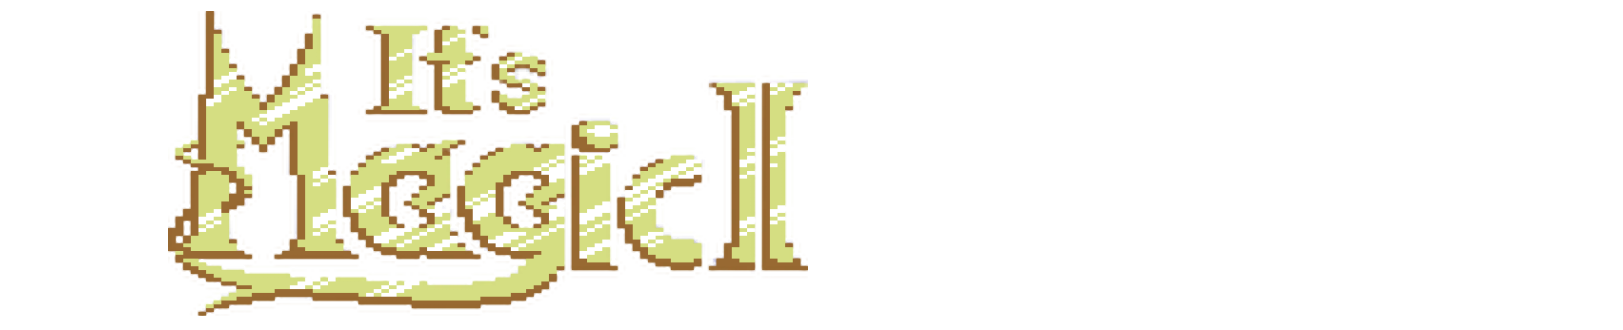 It's Magic 2 (C64)